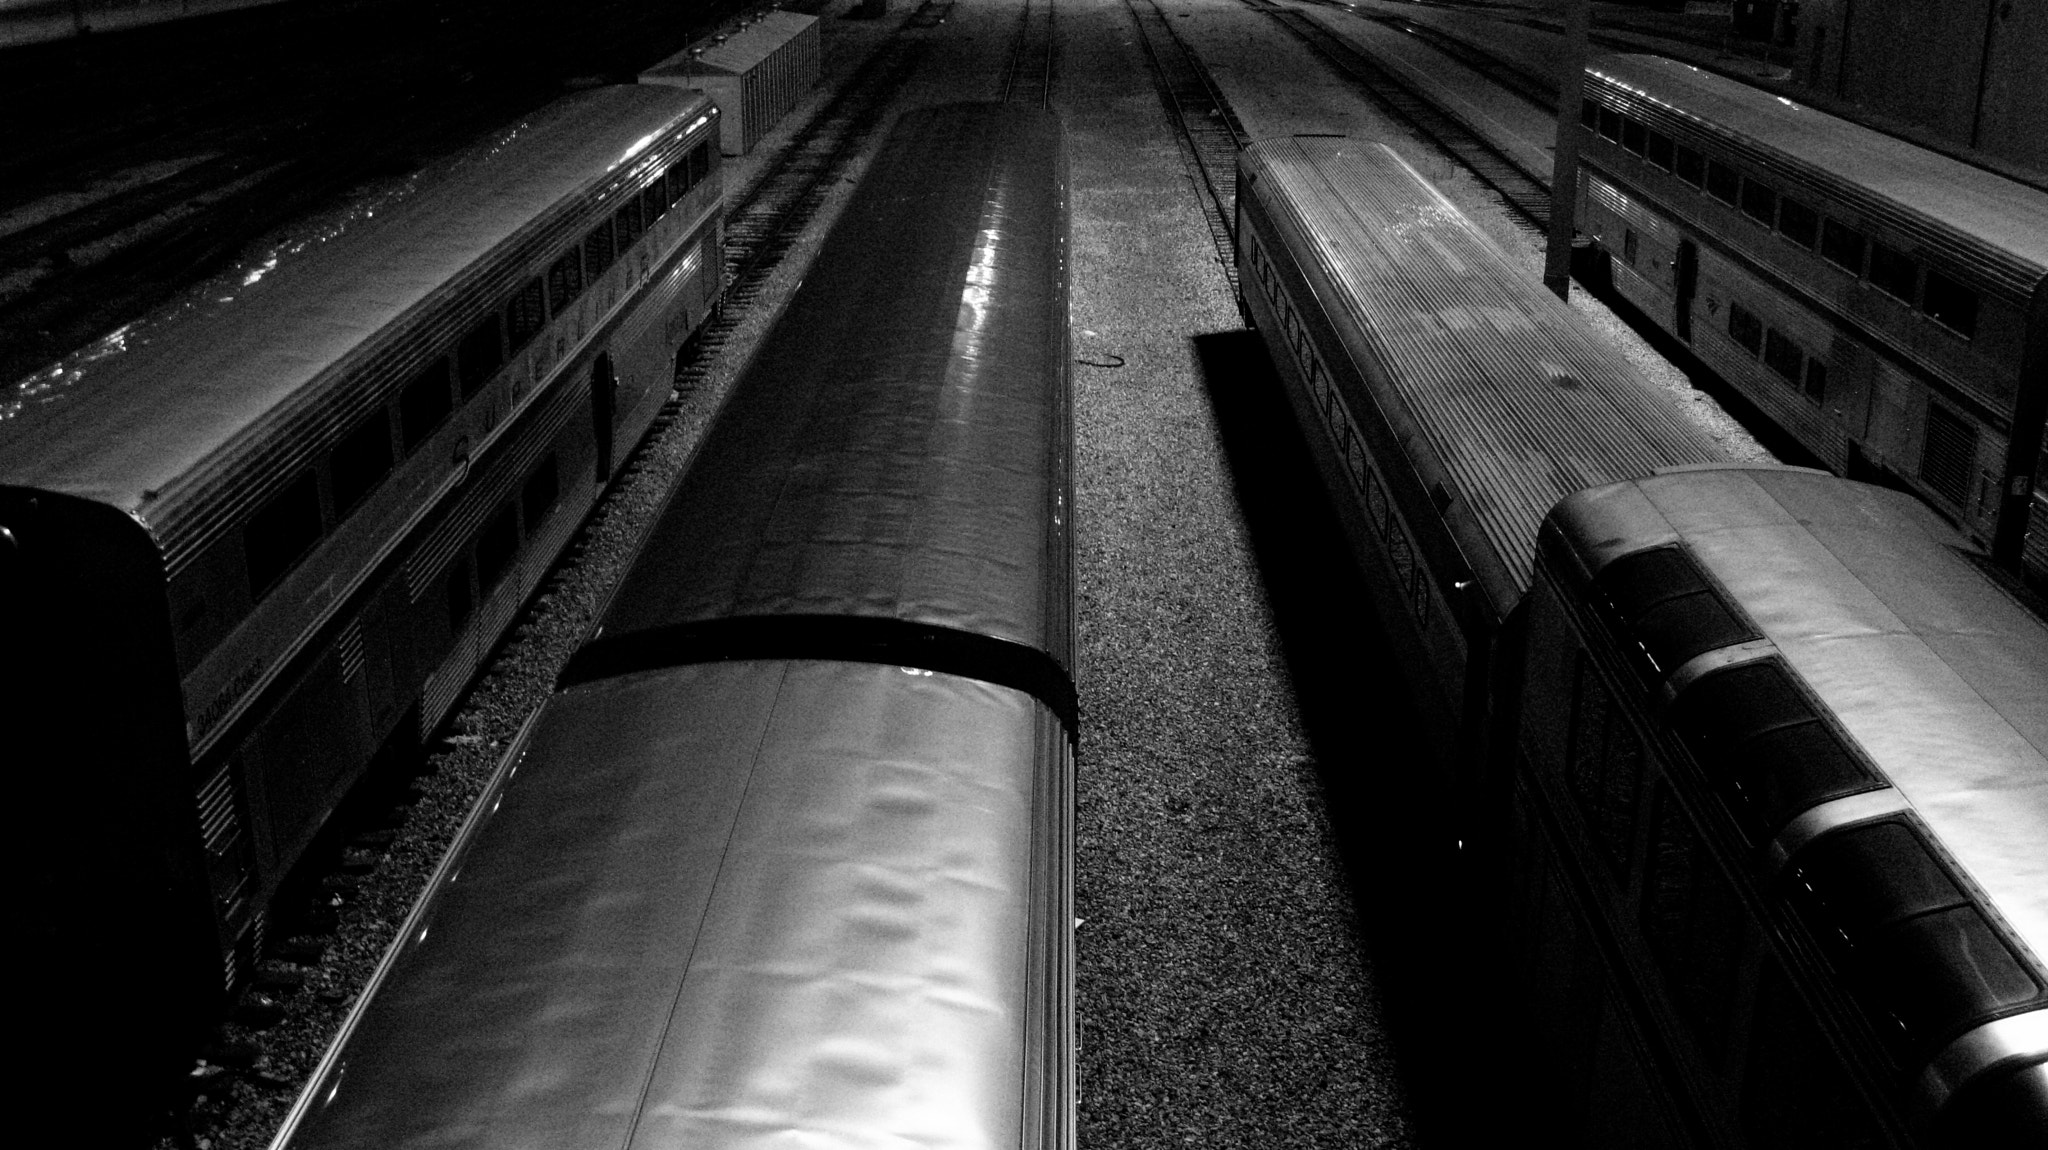 Photograph Sleeping Trains by Dan Marder on 500px